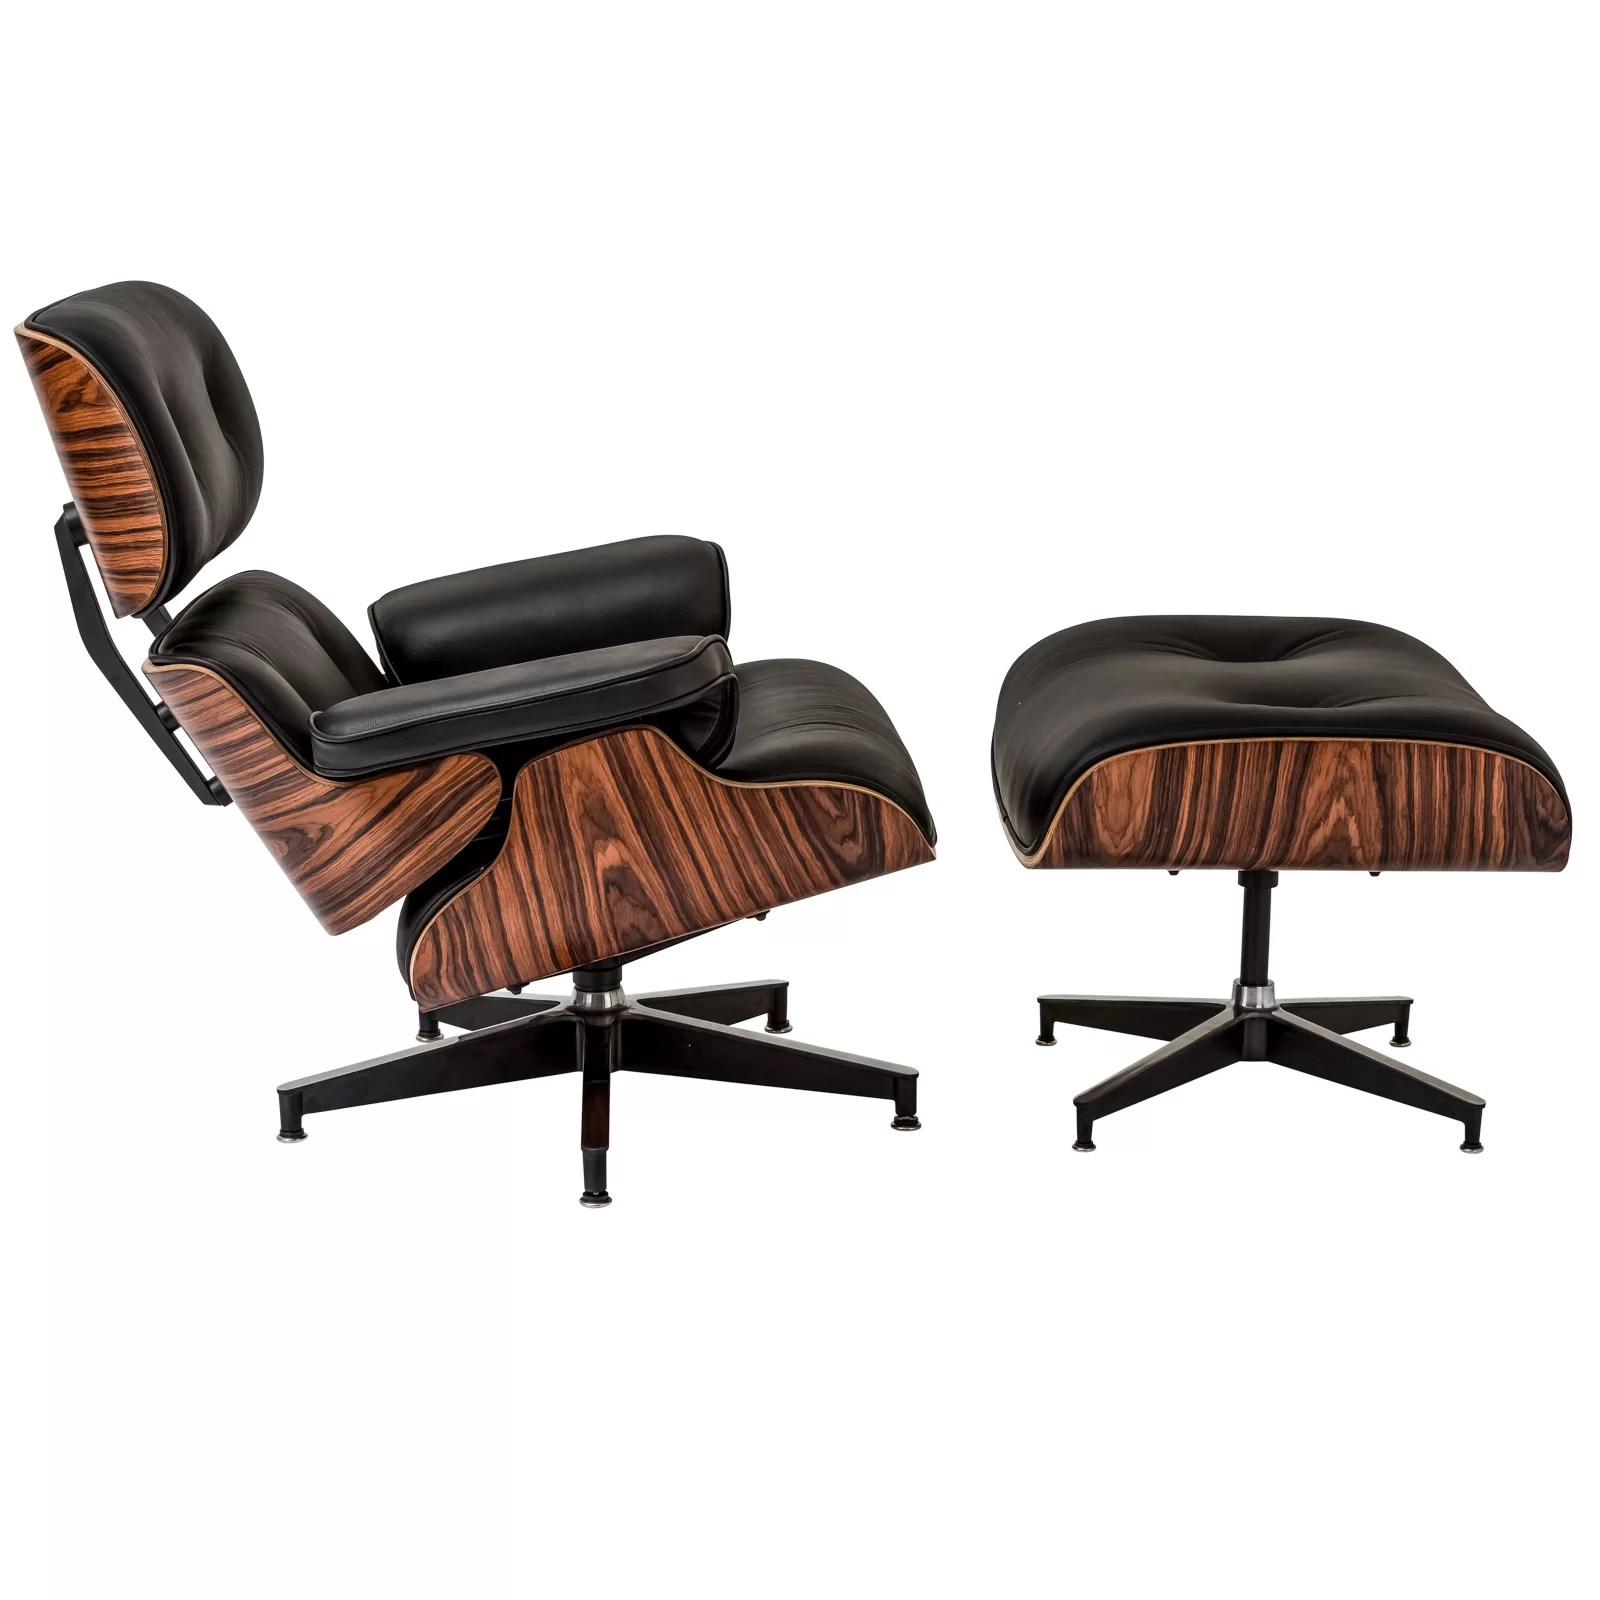 Chair And Ottoman Edgemod Windsor Lounge Chair And Ottoman Set And Reviews